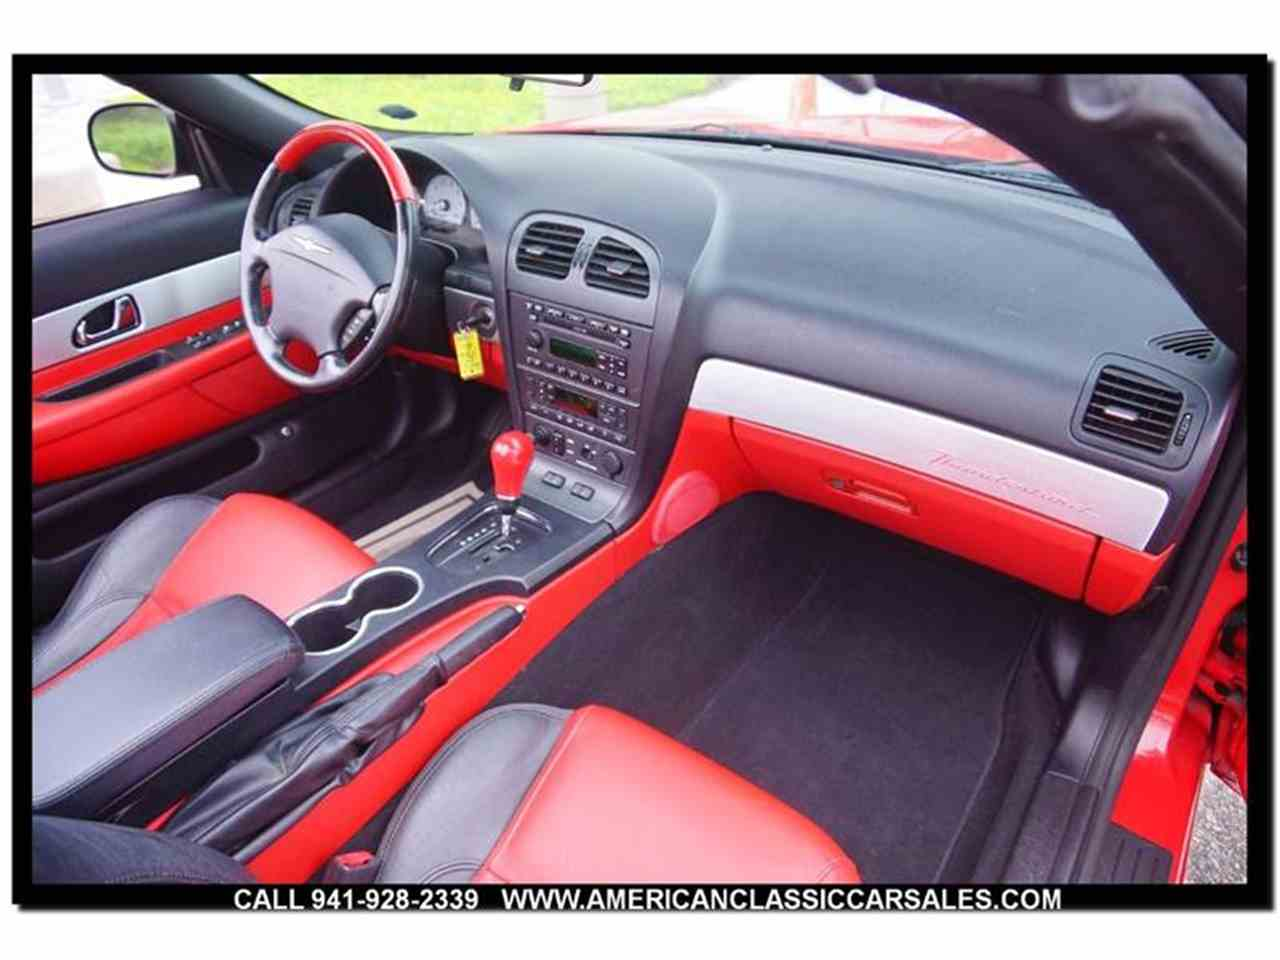 Large Picture of '04 Thunderbird located in Florida - $12,440.00 - MCAN